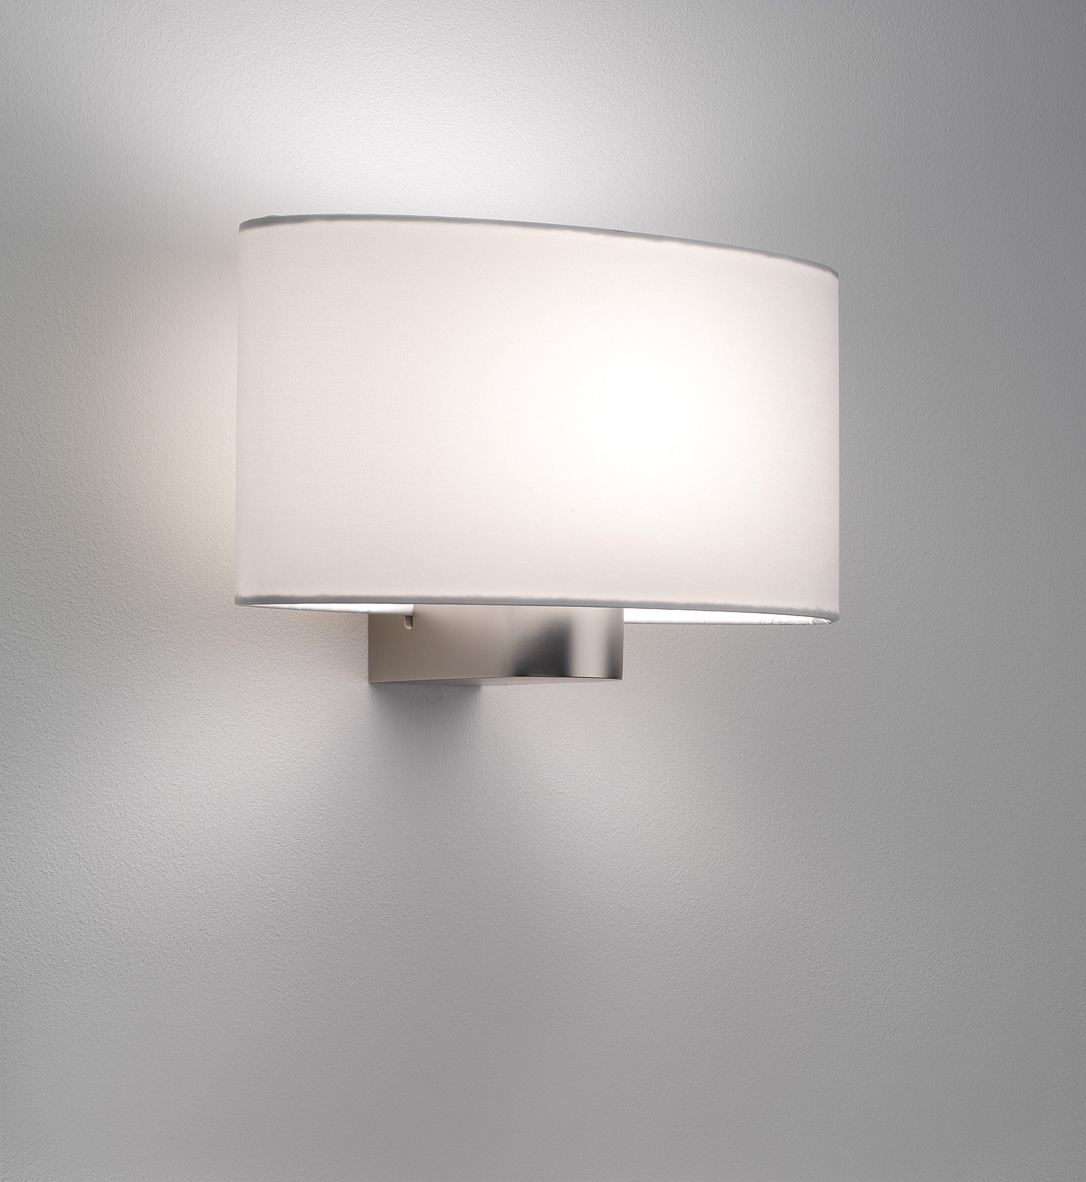 Lamp Shades For Wall Lamps : Astro Napoli 0881 oval lampshade wall light 60W E27 matt nickel shade options eBay